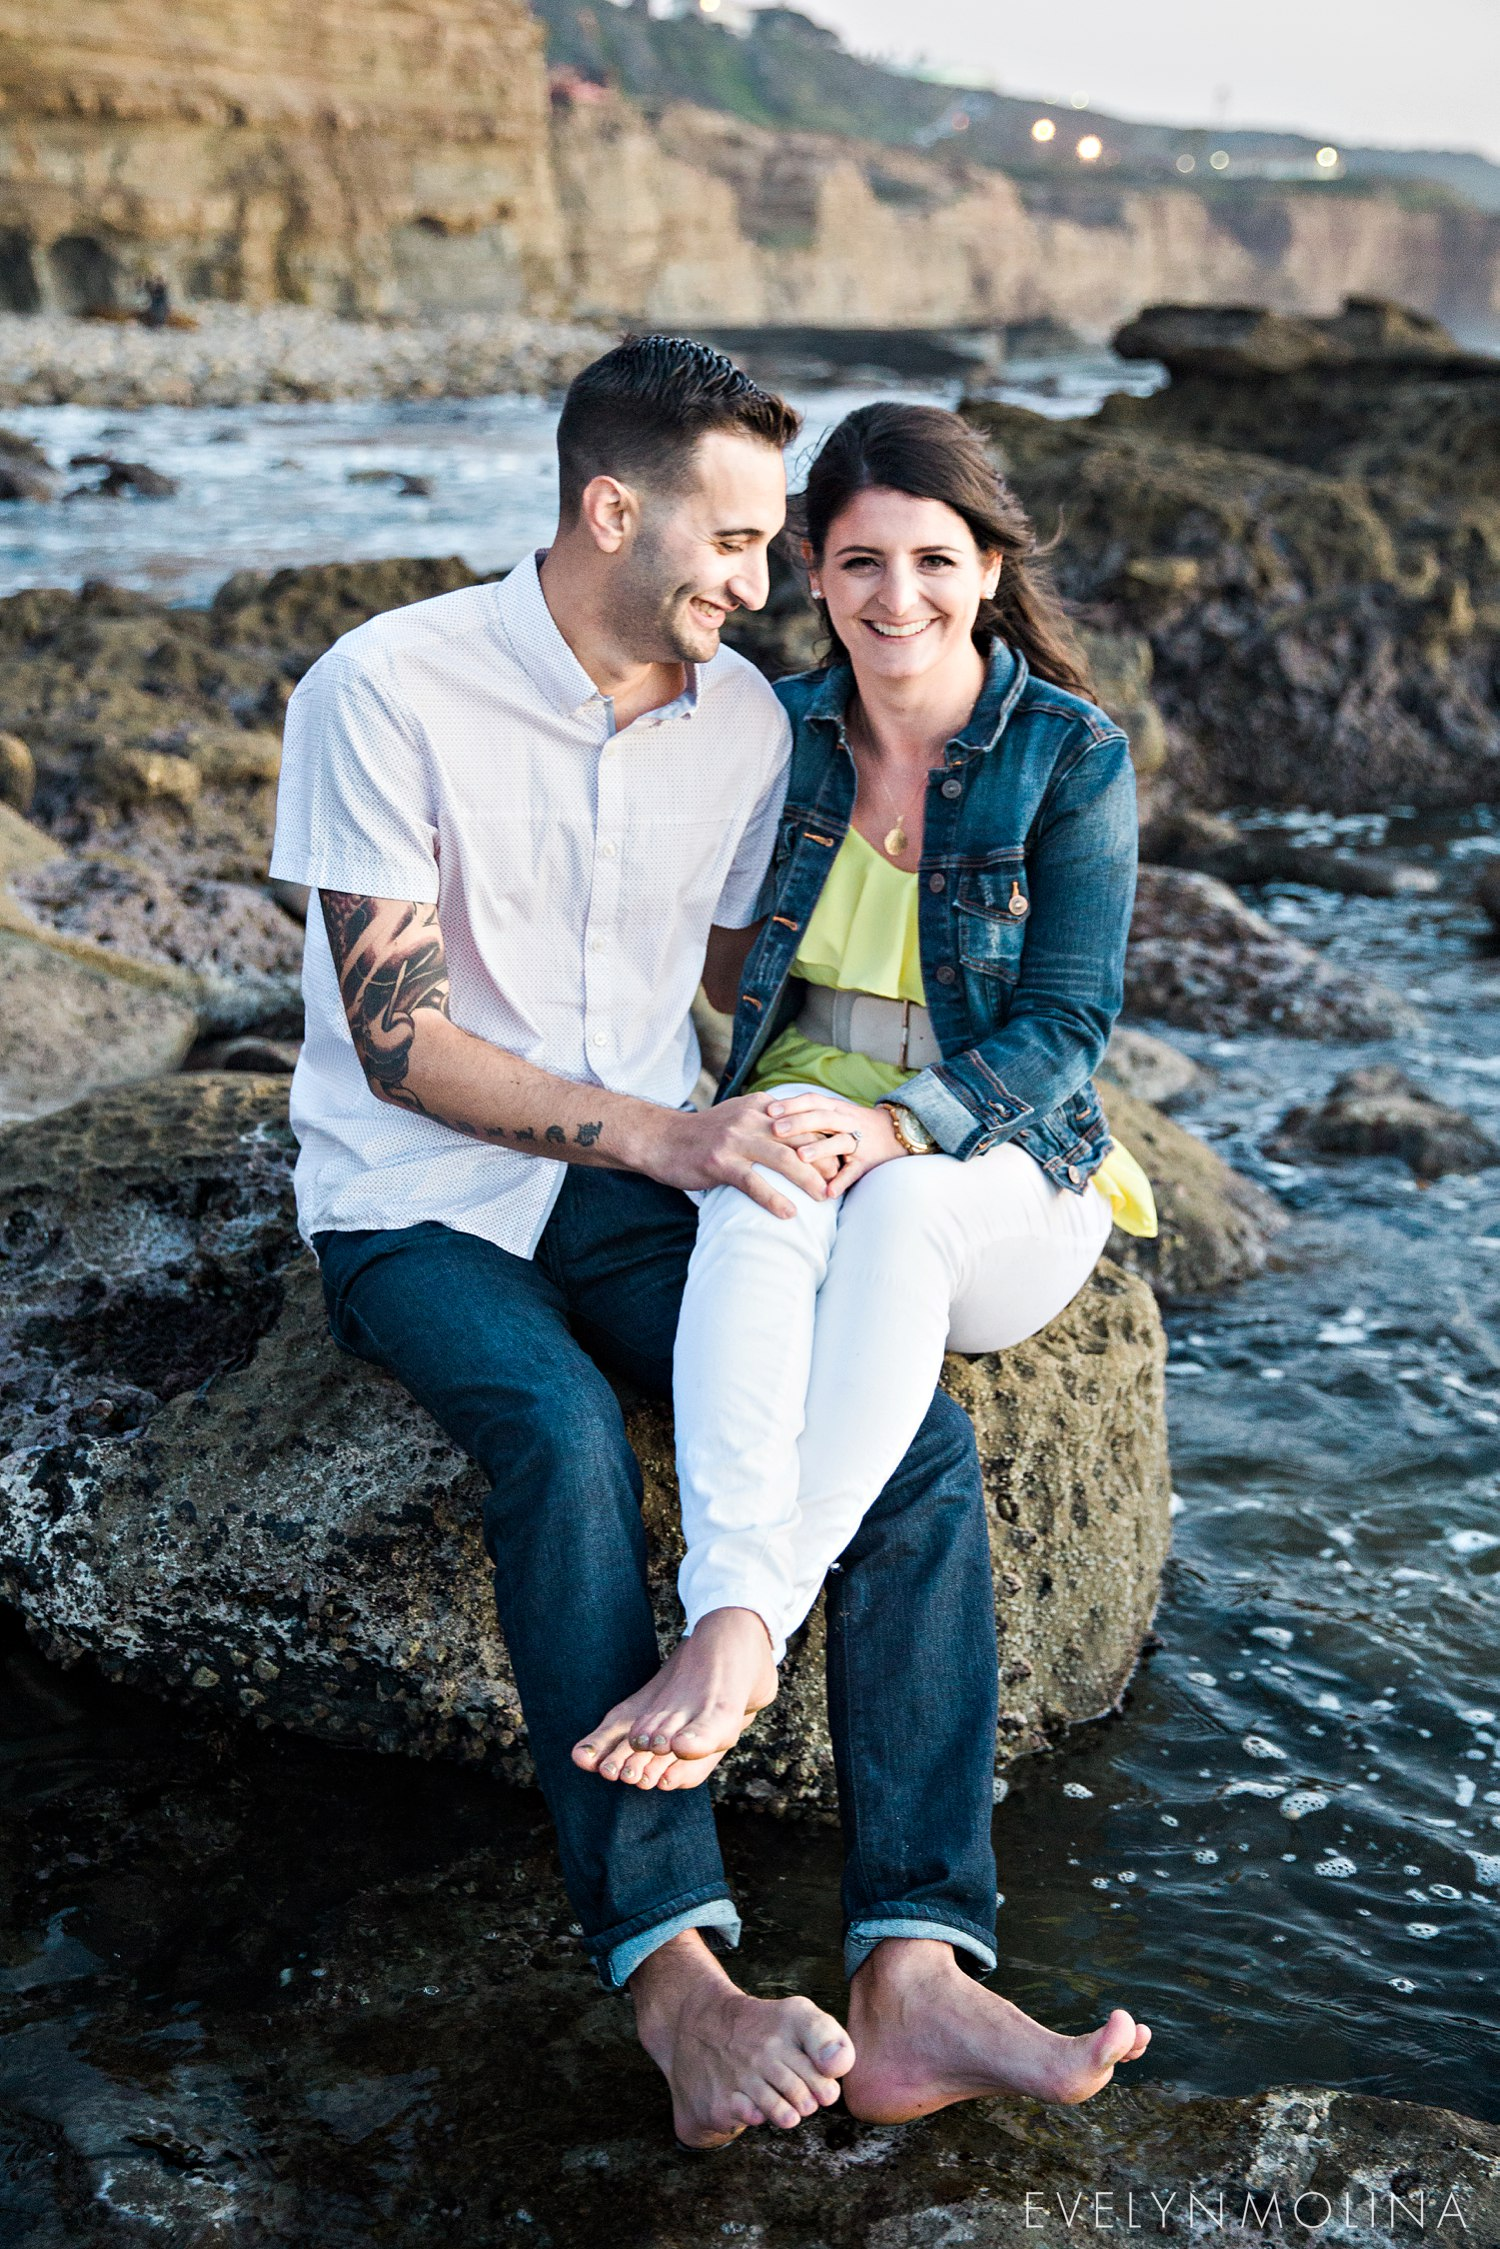 Sunset Cliffs Engagement Session - Carly and Alex - Evelyn Molina Photography_0032.jpg